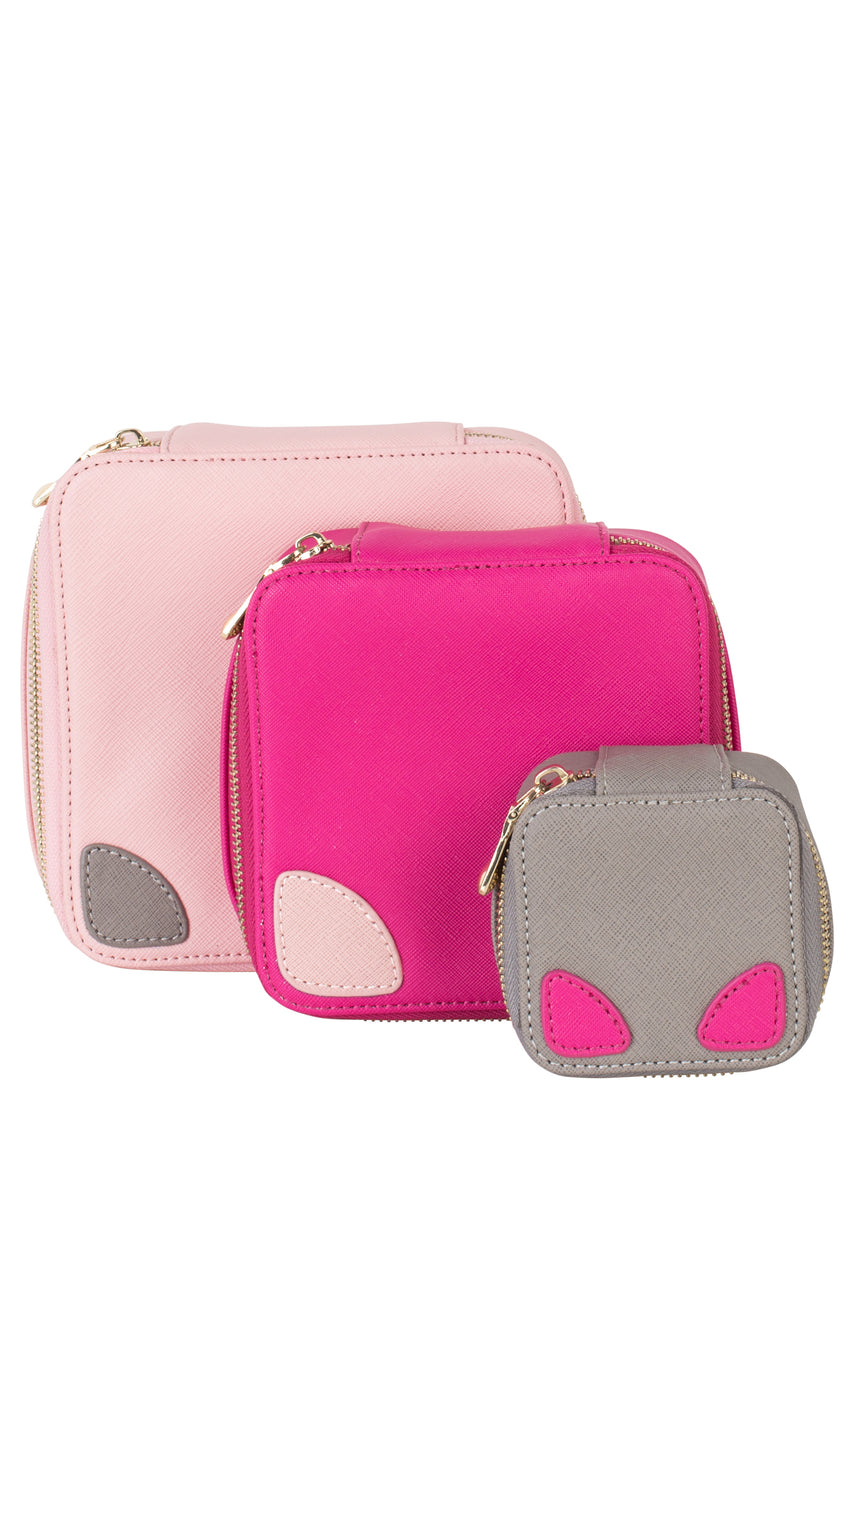 Large Accessories Pouch - Pink